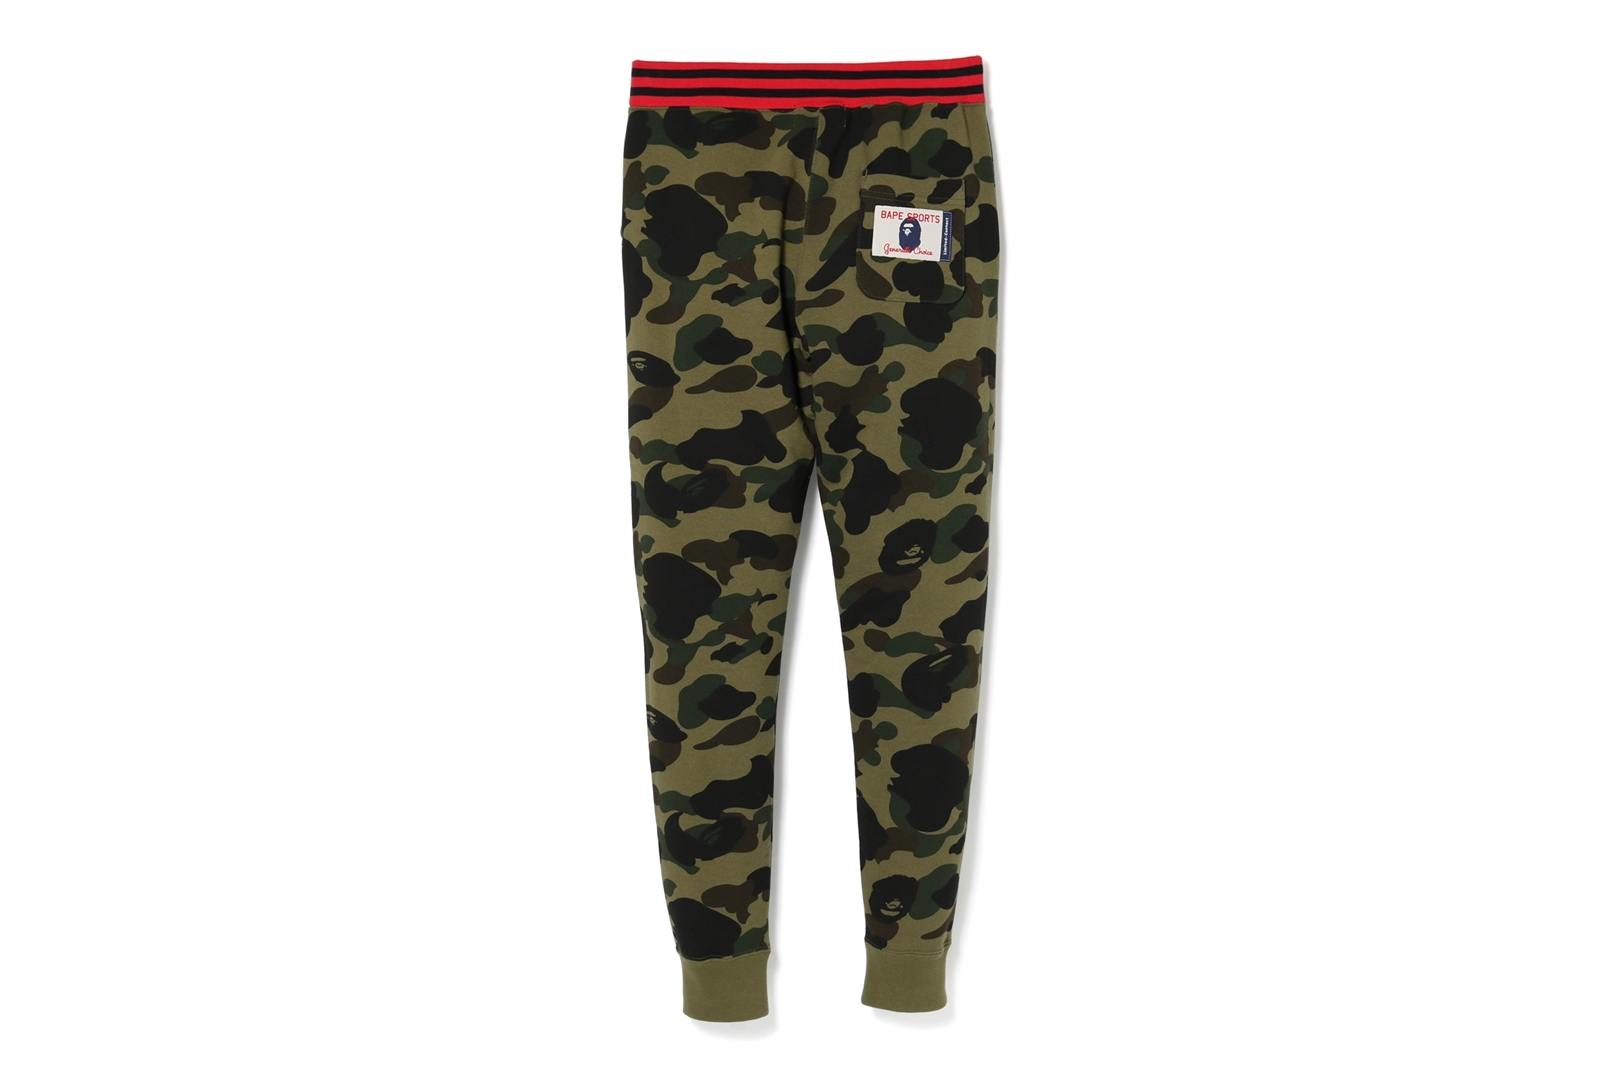 1ST CAMO SHARK SLIM SWEAT PANTS_a0174495_17334316.jpg